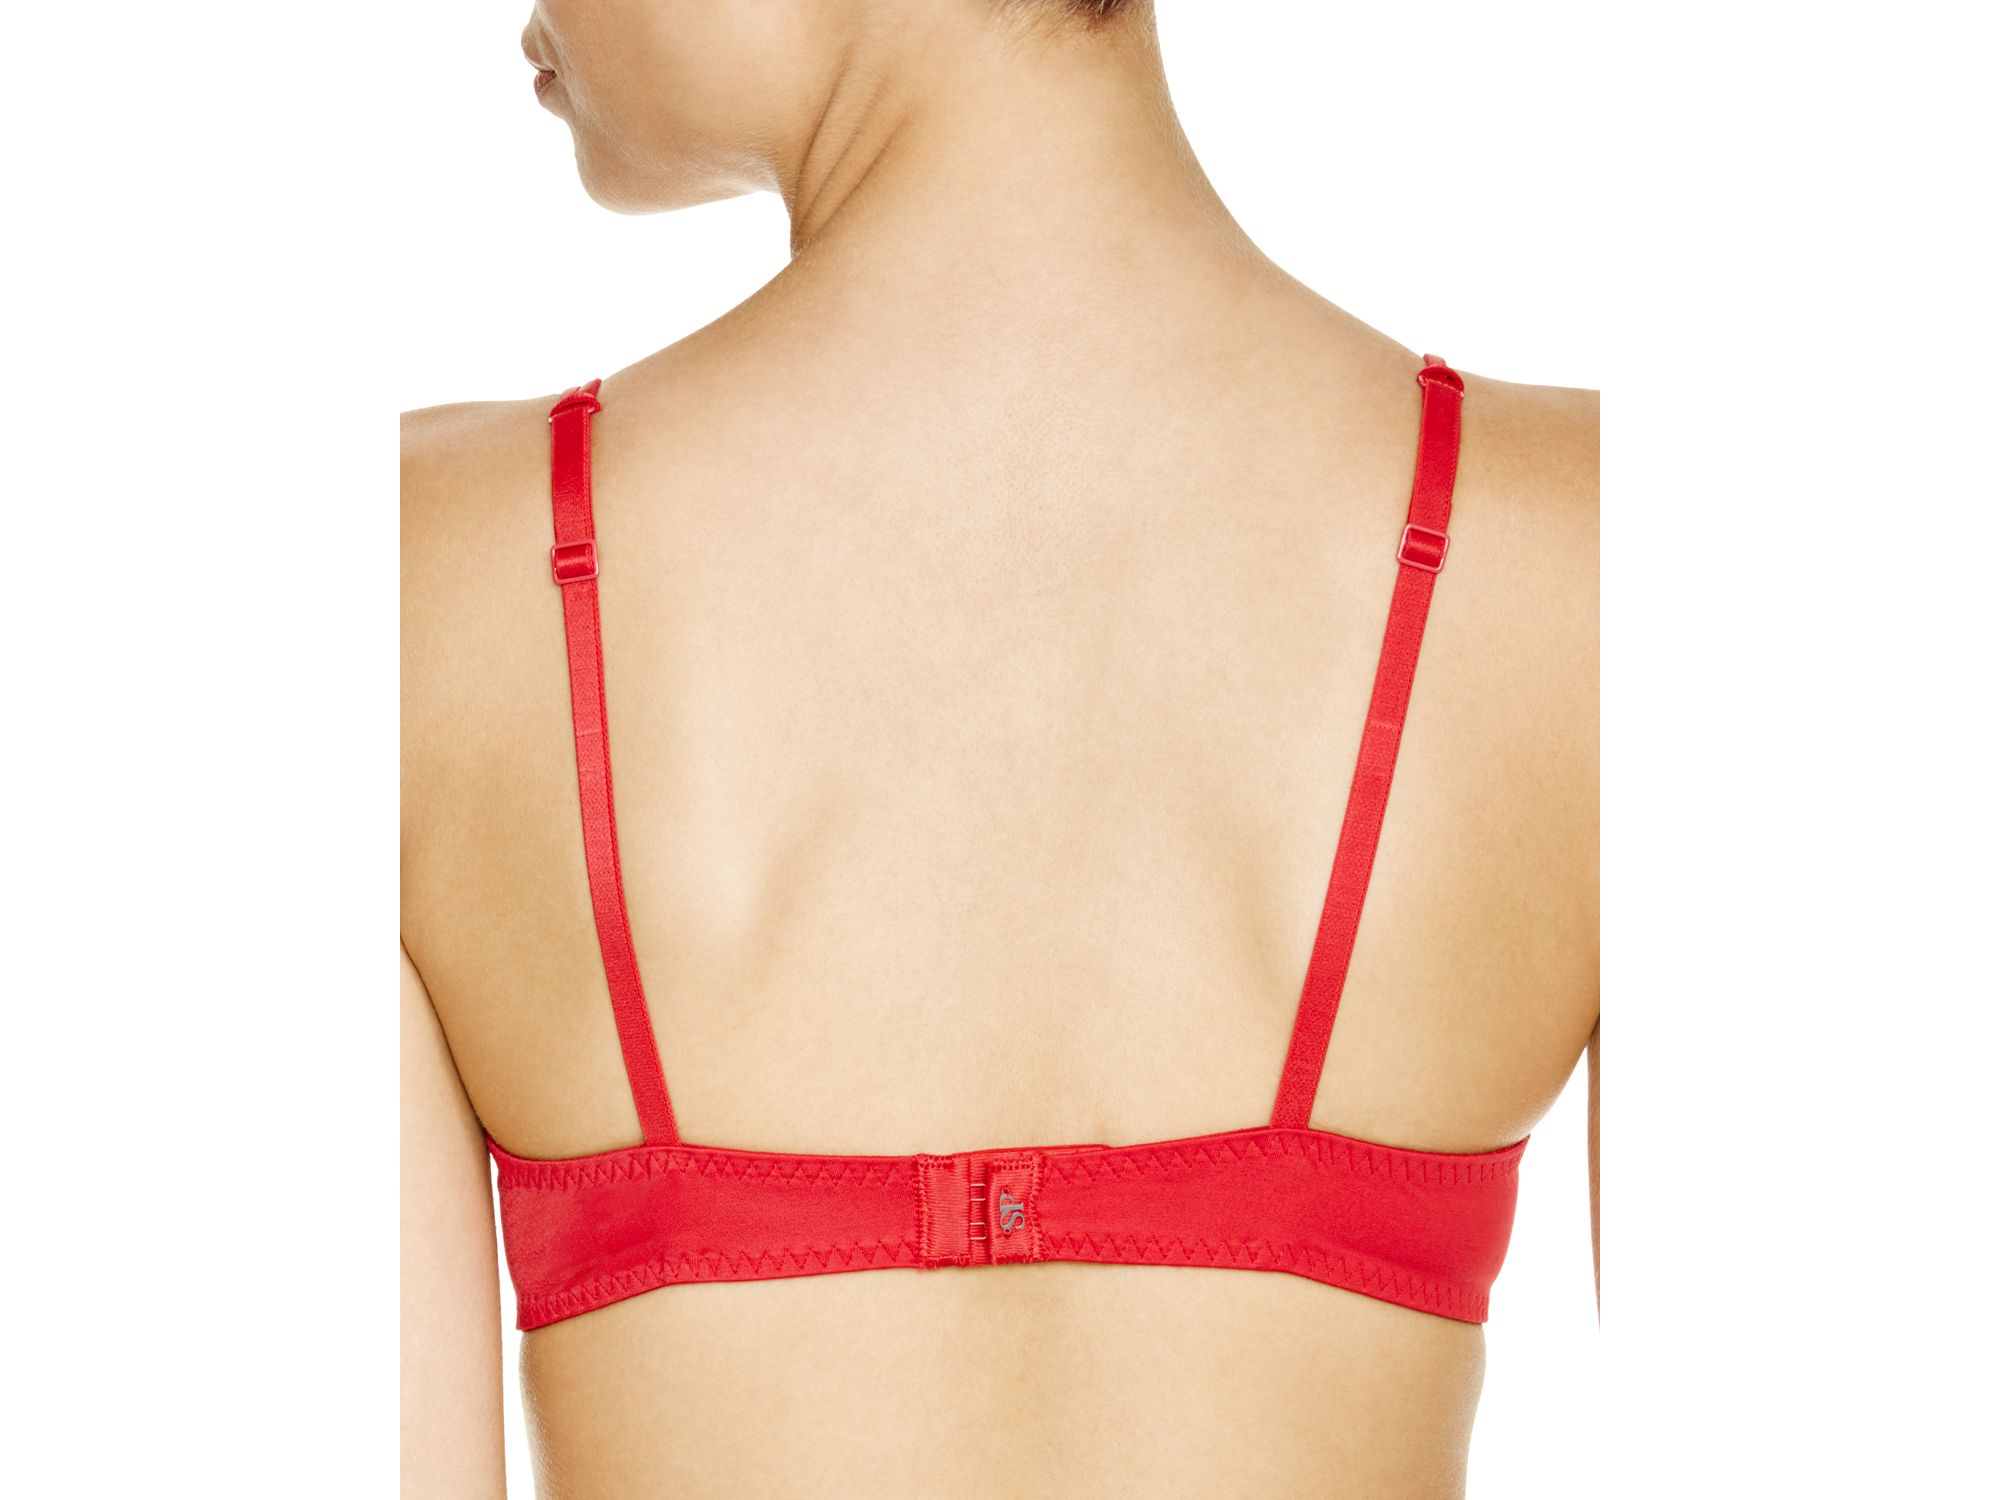 NWT Simone Perele French Ruby Red DELICE Embroidered Underwire Bra